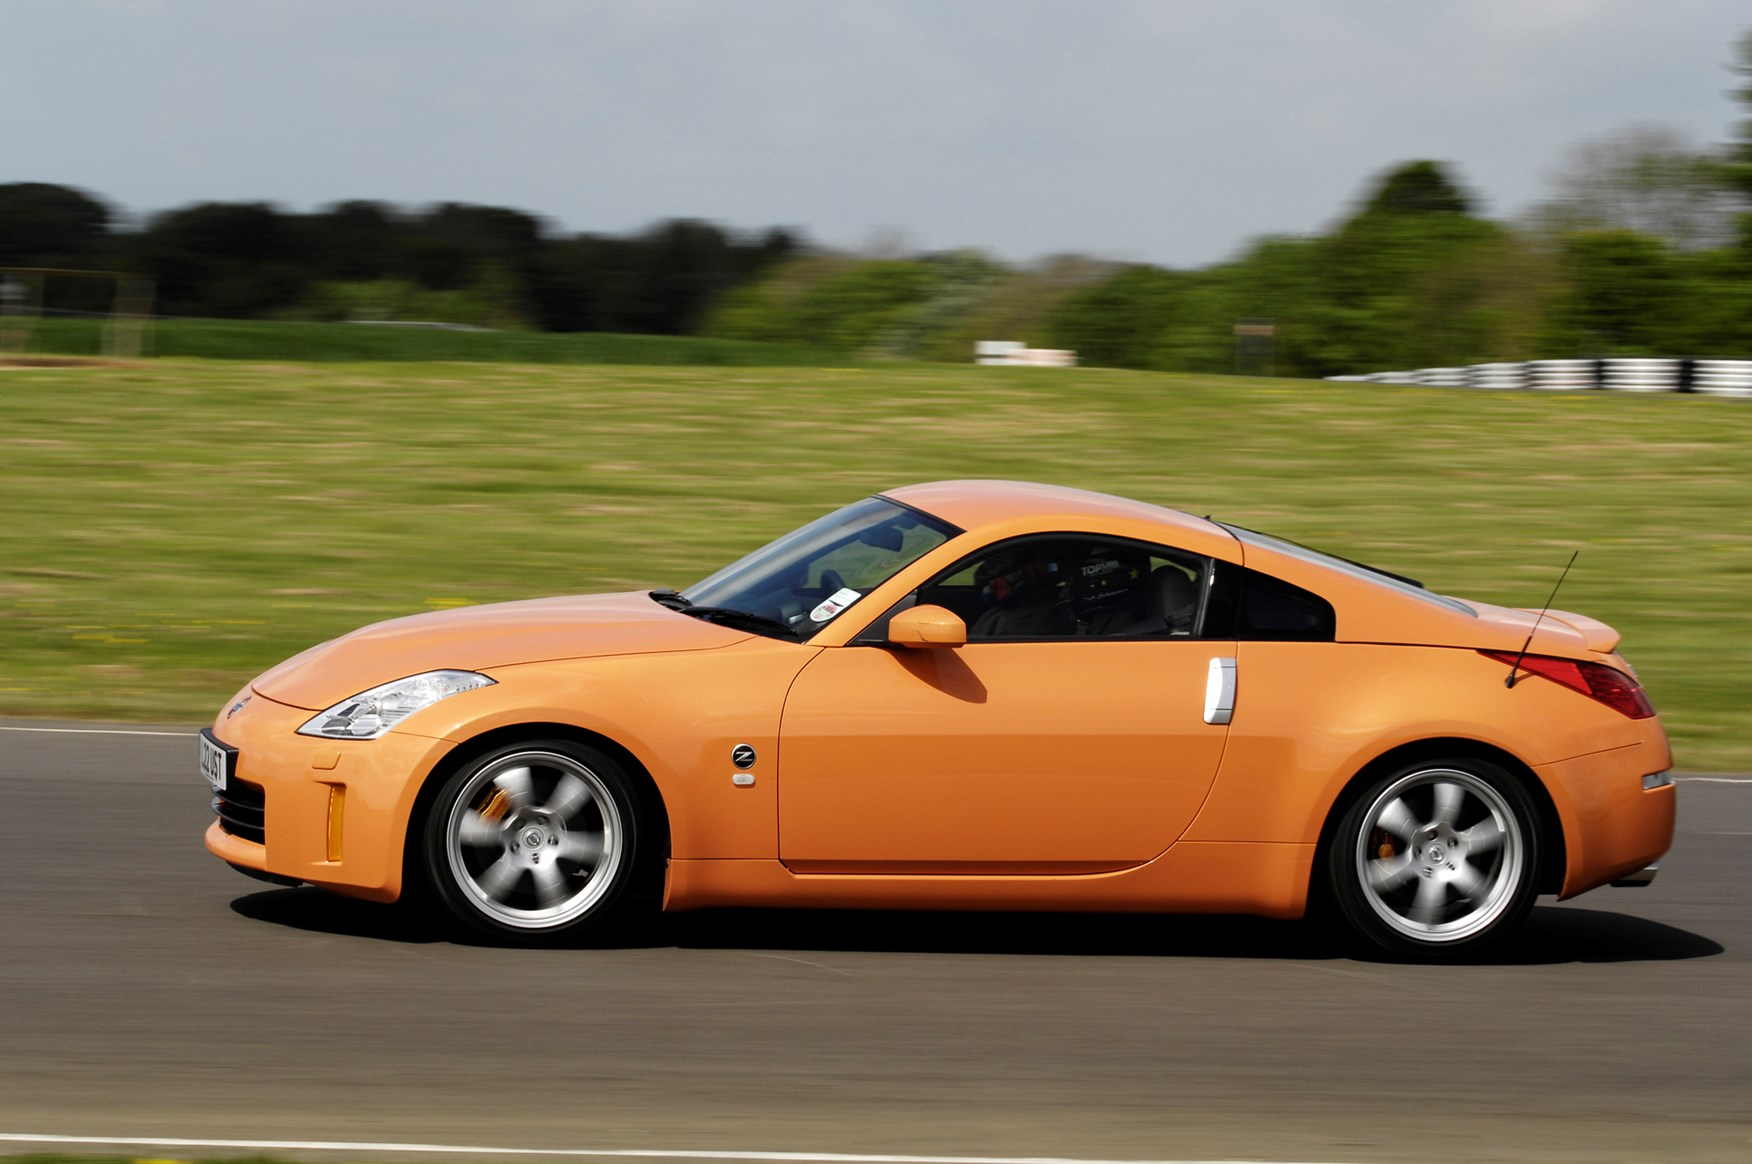 Used 350z For Sale >> Nissan 350Z Coupé Review (2003 - 2010) | Parkers